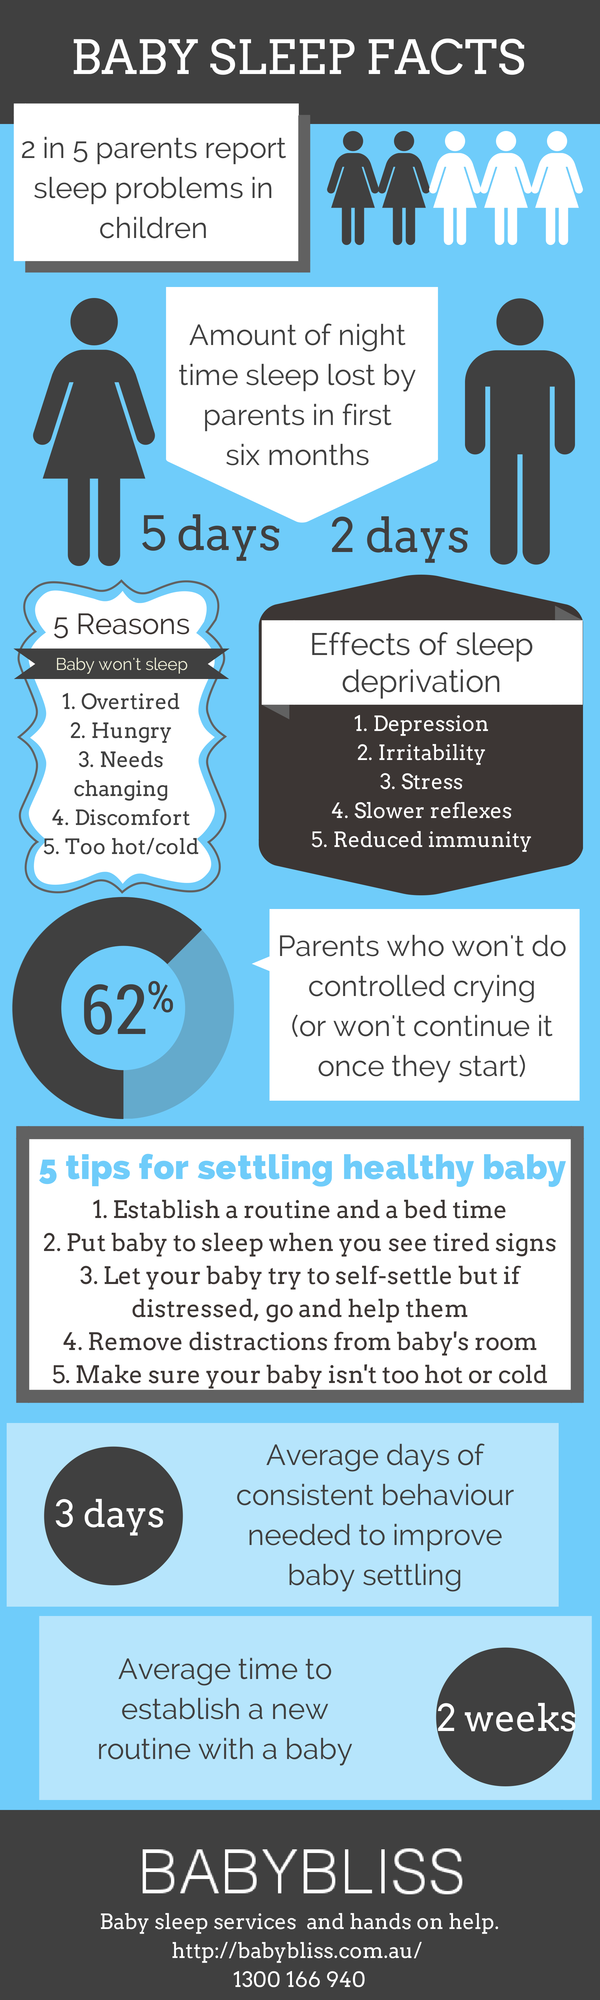 Baby sleep infographic